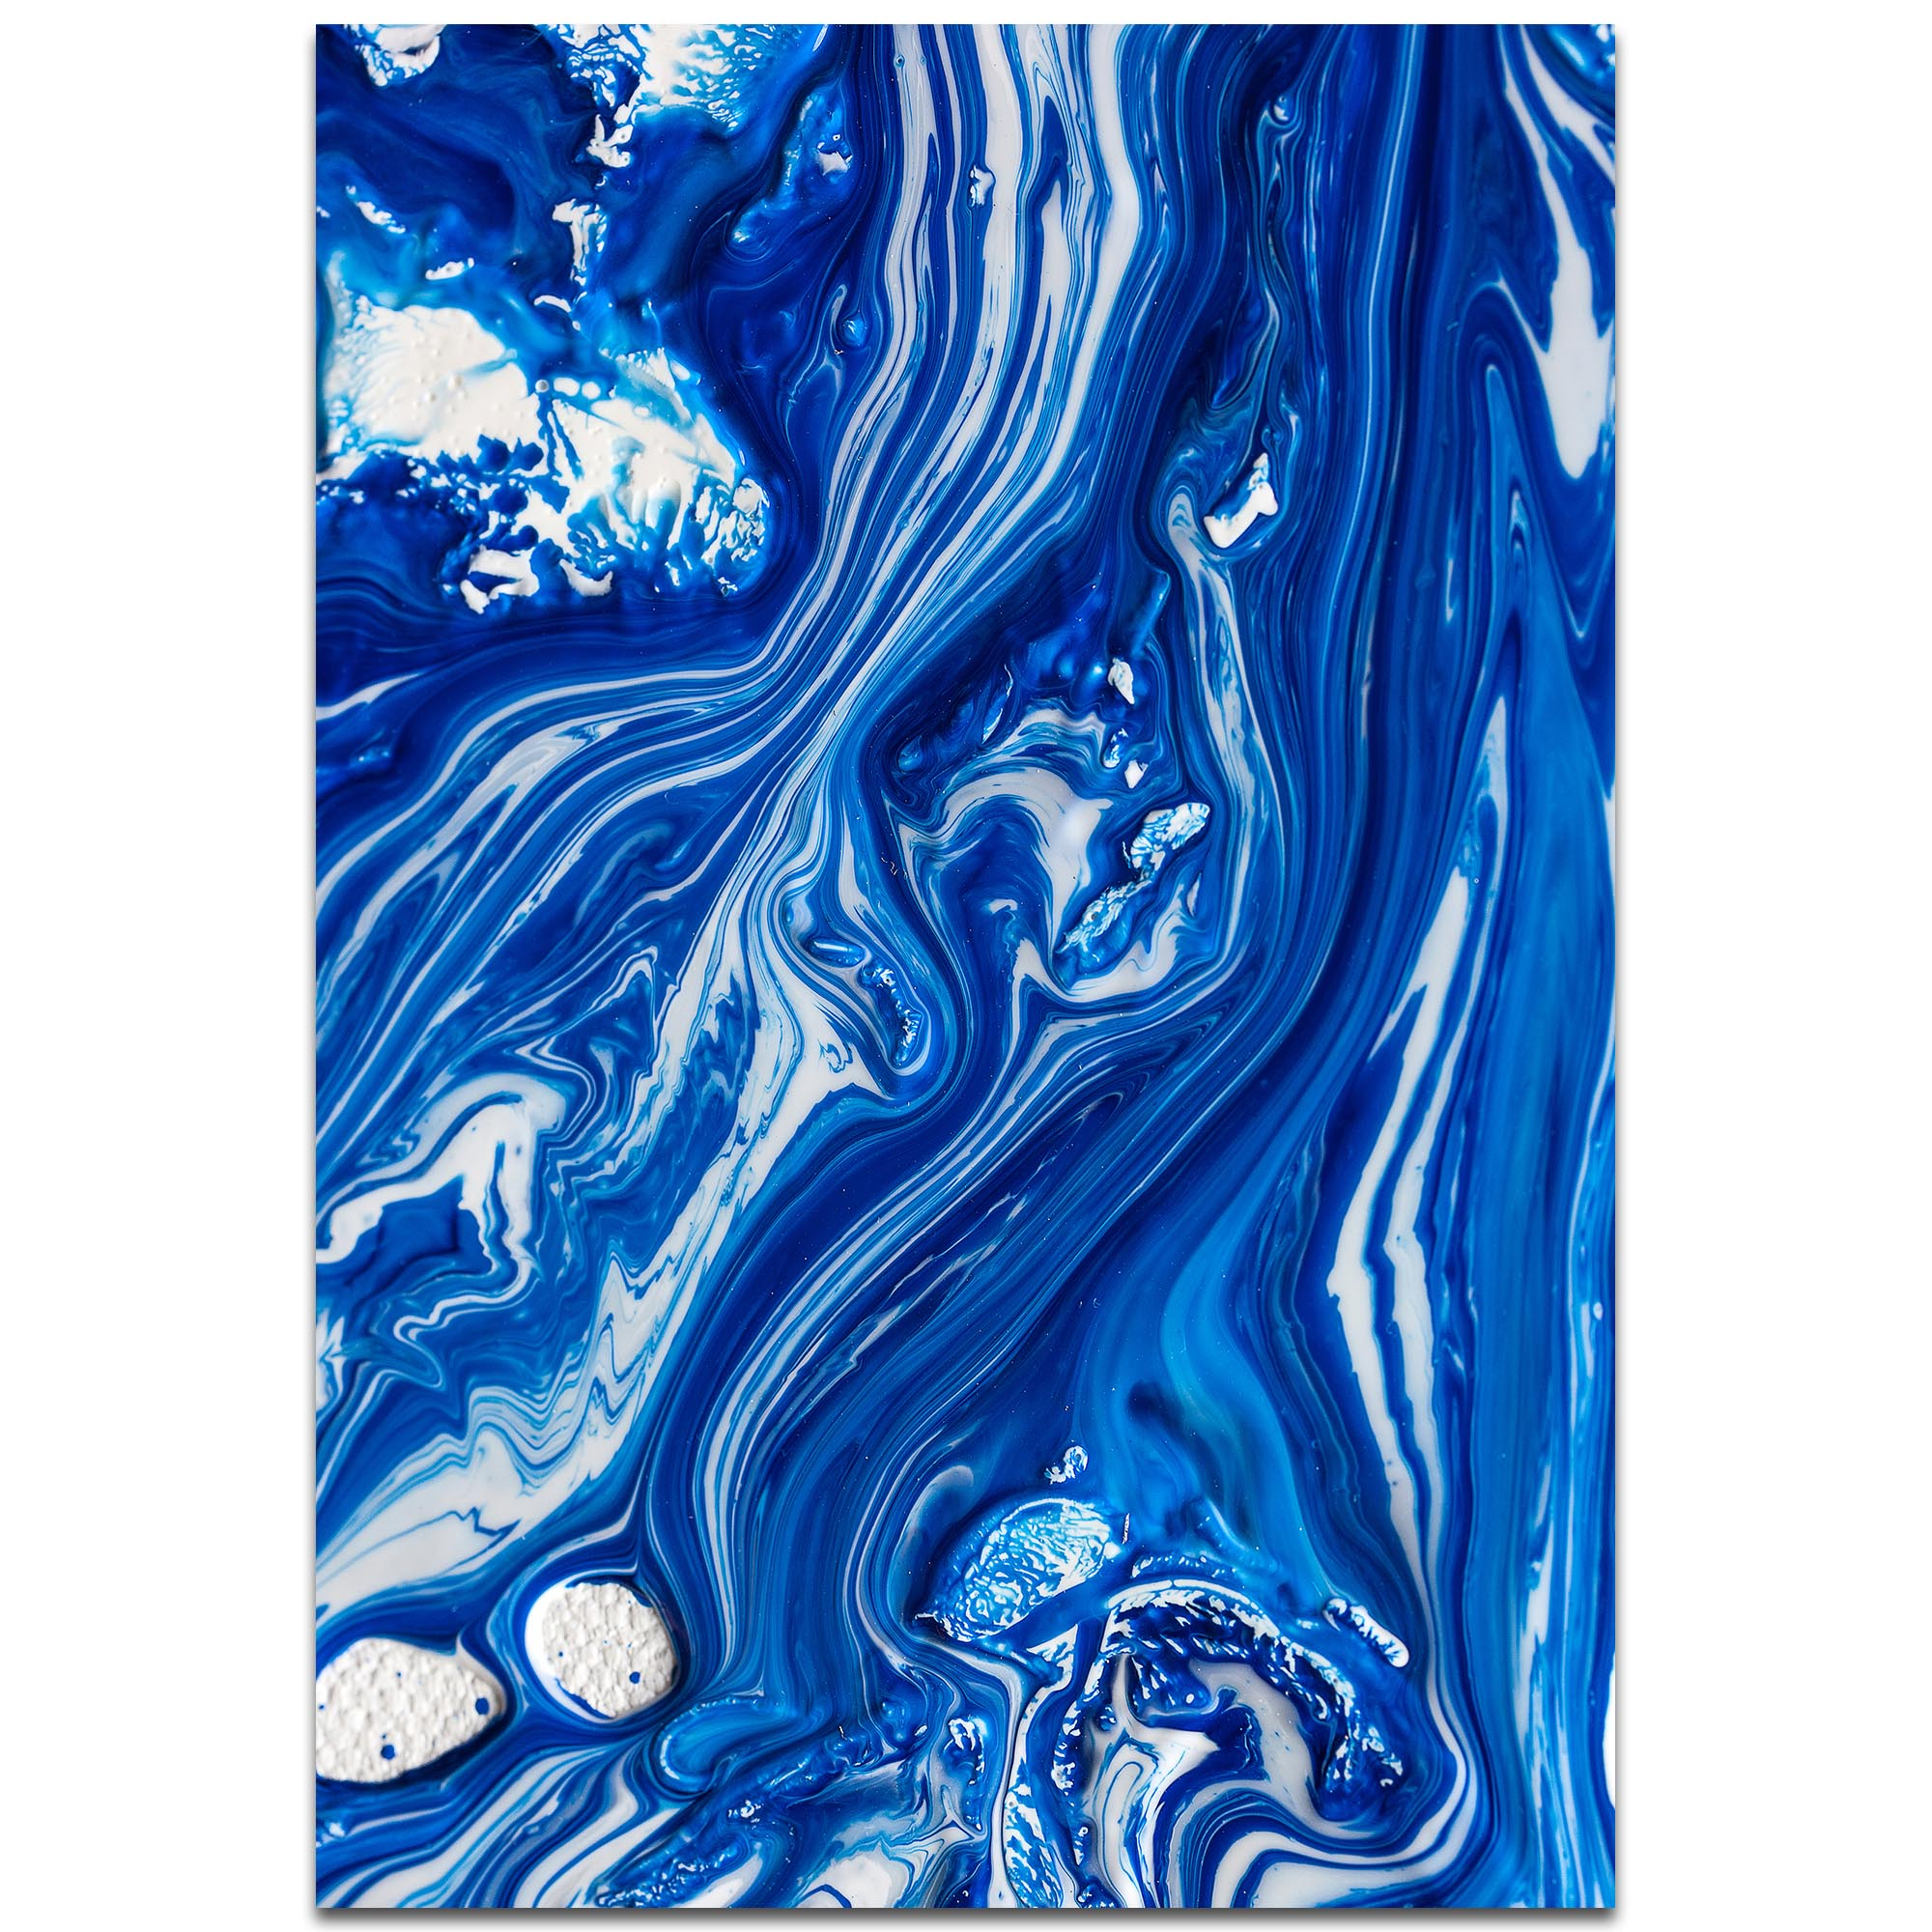 Abstract Wall Art 'Coastal Waters 6' - Colorful Urban Decor on Metal or Plexiglass